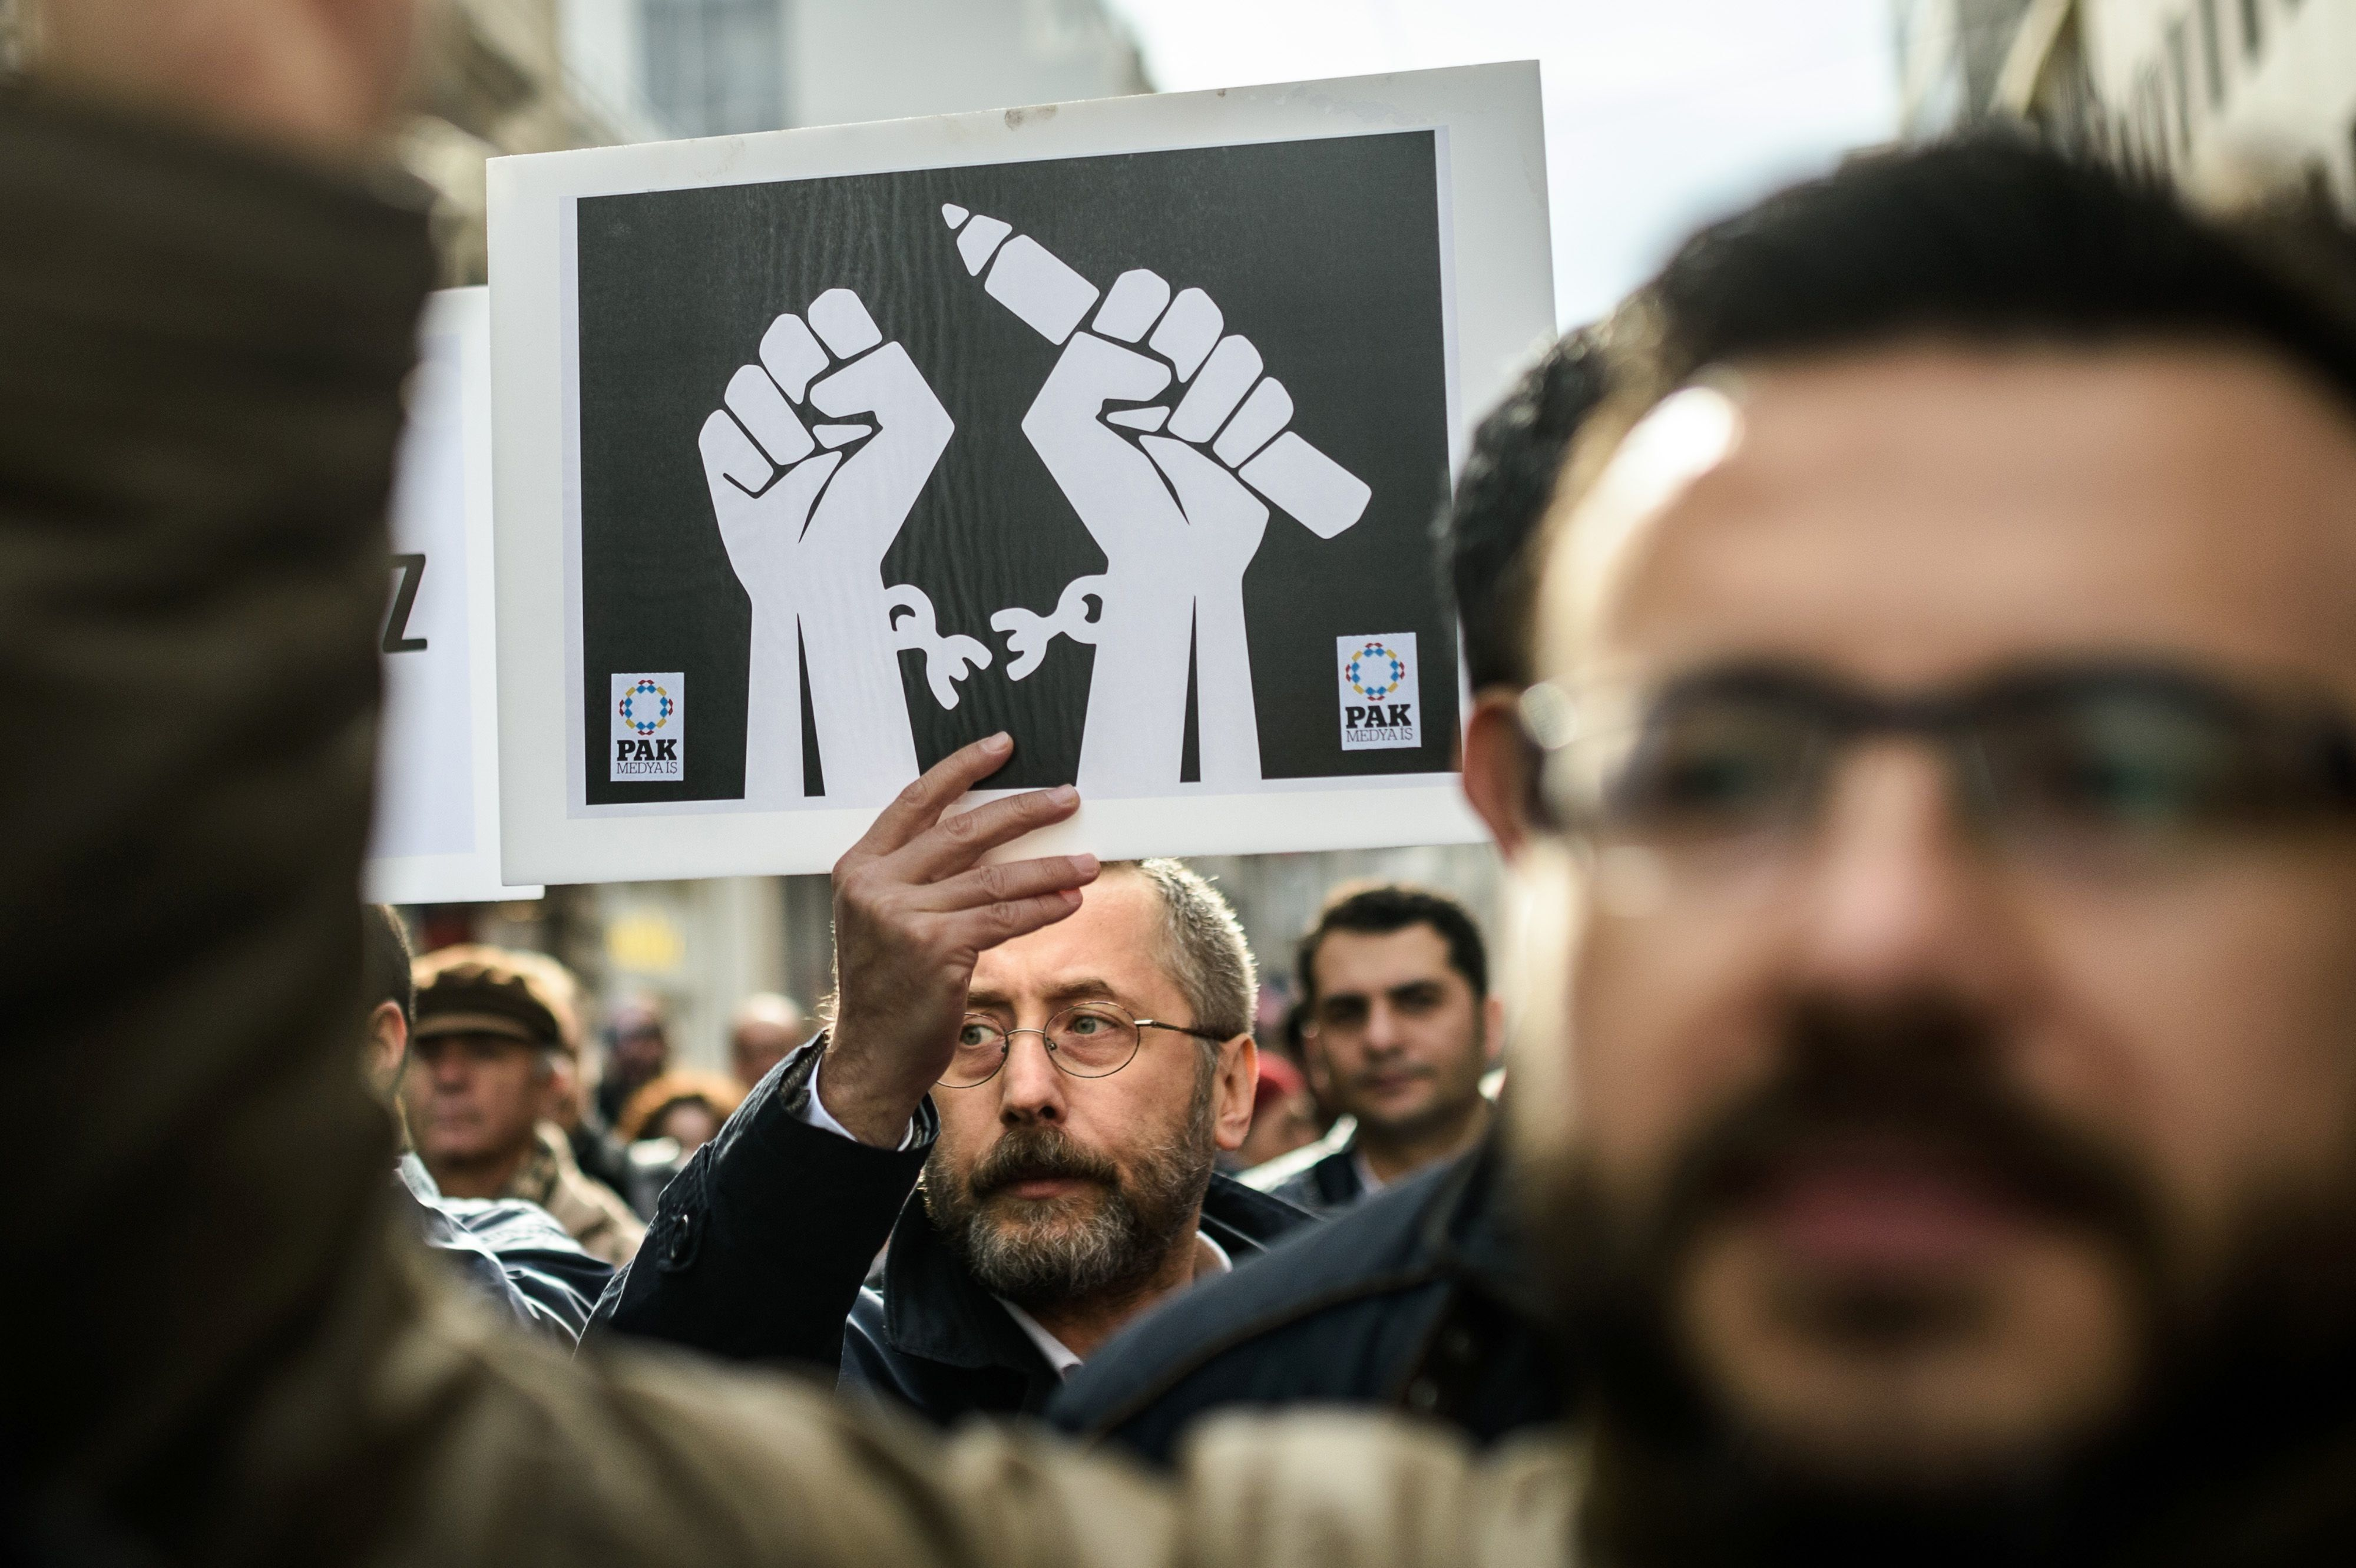 Journalists shout slogans and hold placards on January 10, 2016 during a march marking Journalism Day on Istiklal avenue in Istanbul as they protest against the imprisonment of journalists.   Reporters Without Borders (Reporters Sans Frontieres) has ranked Turkey 149th out of 180 in its 2015 press freedom index in October, warning of a 'dangerous surge in censorship'.  / AFP / OZAN KOSE        (Photo credit should read OZAN KOSE/AFP/Getty Images)